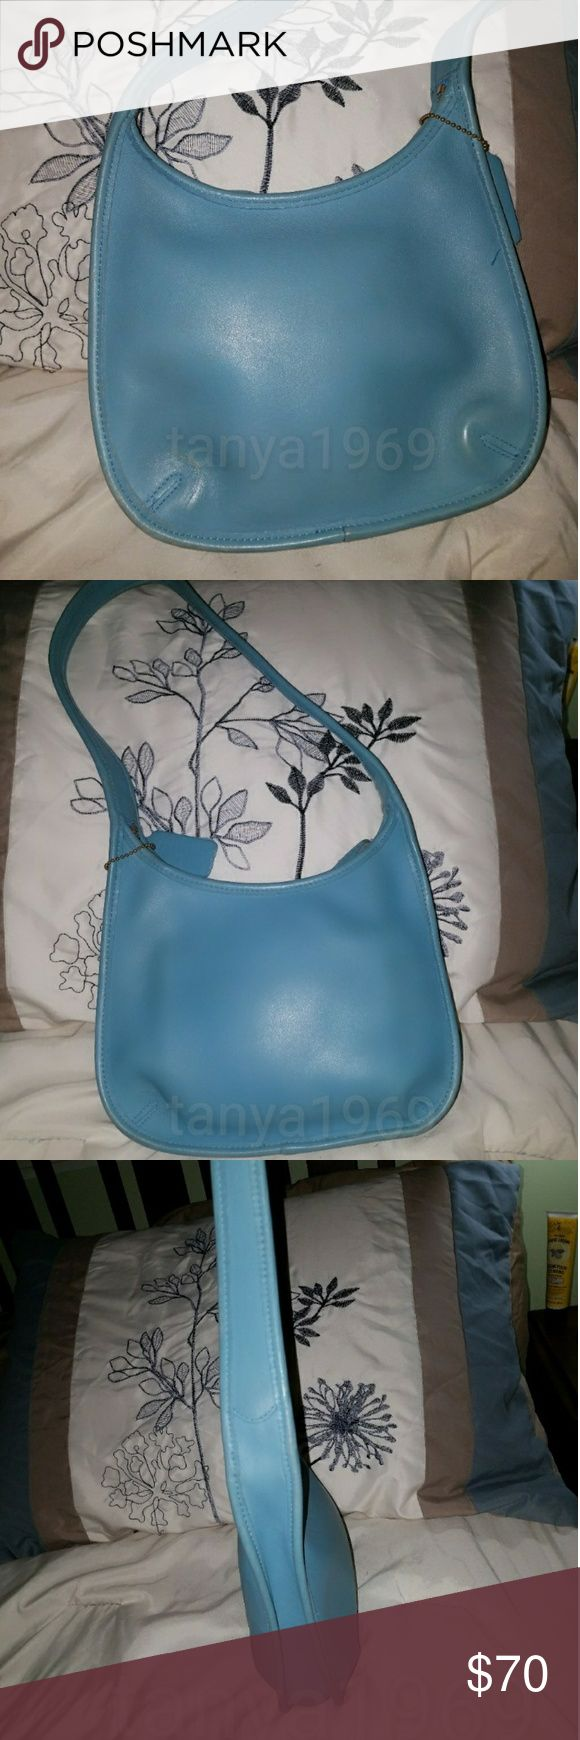 Vintage Robin egg blue Coach Ergo hobo 9020 Authentic Vintage Coach Ergo hobo in rare robin egg blue. Matching hang tag is attached . 1 interior slip pocket Serial number j7D-9020. Made in USA. Light patina, appears a number was stamped in the bottom interior, see pics. Coach Bags Hobos